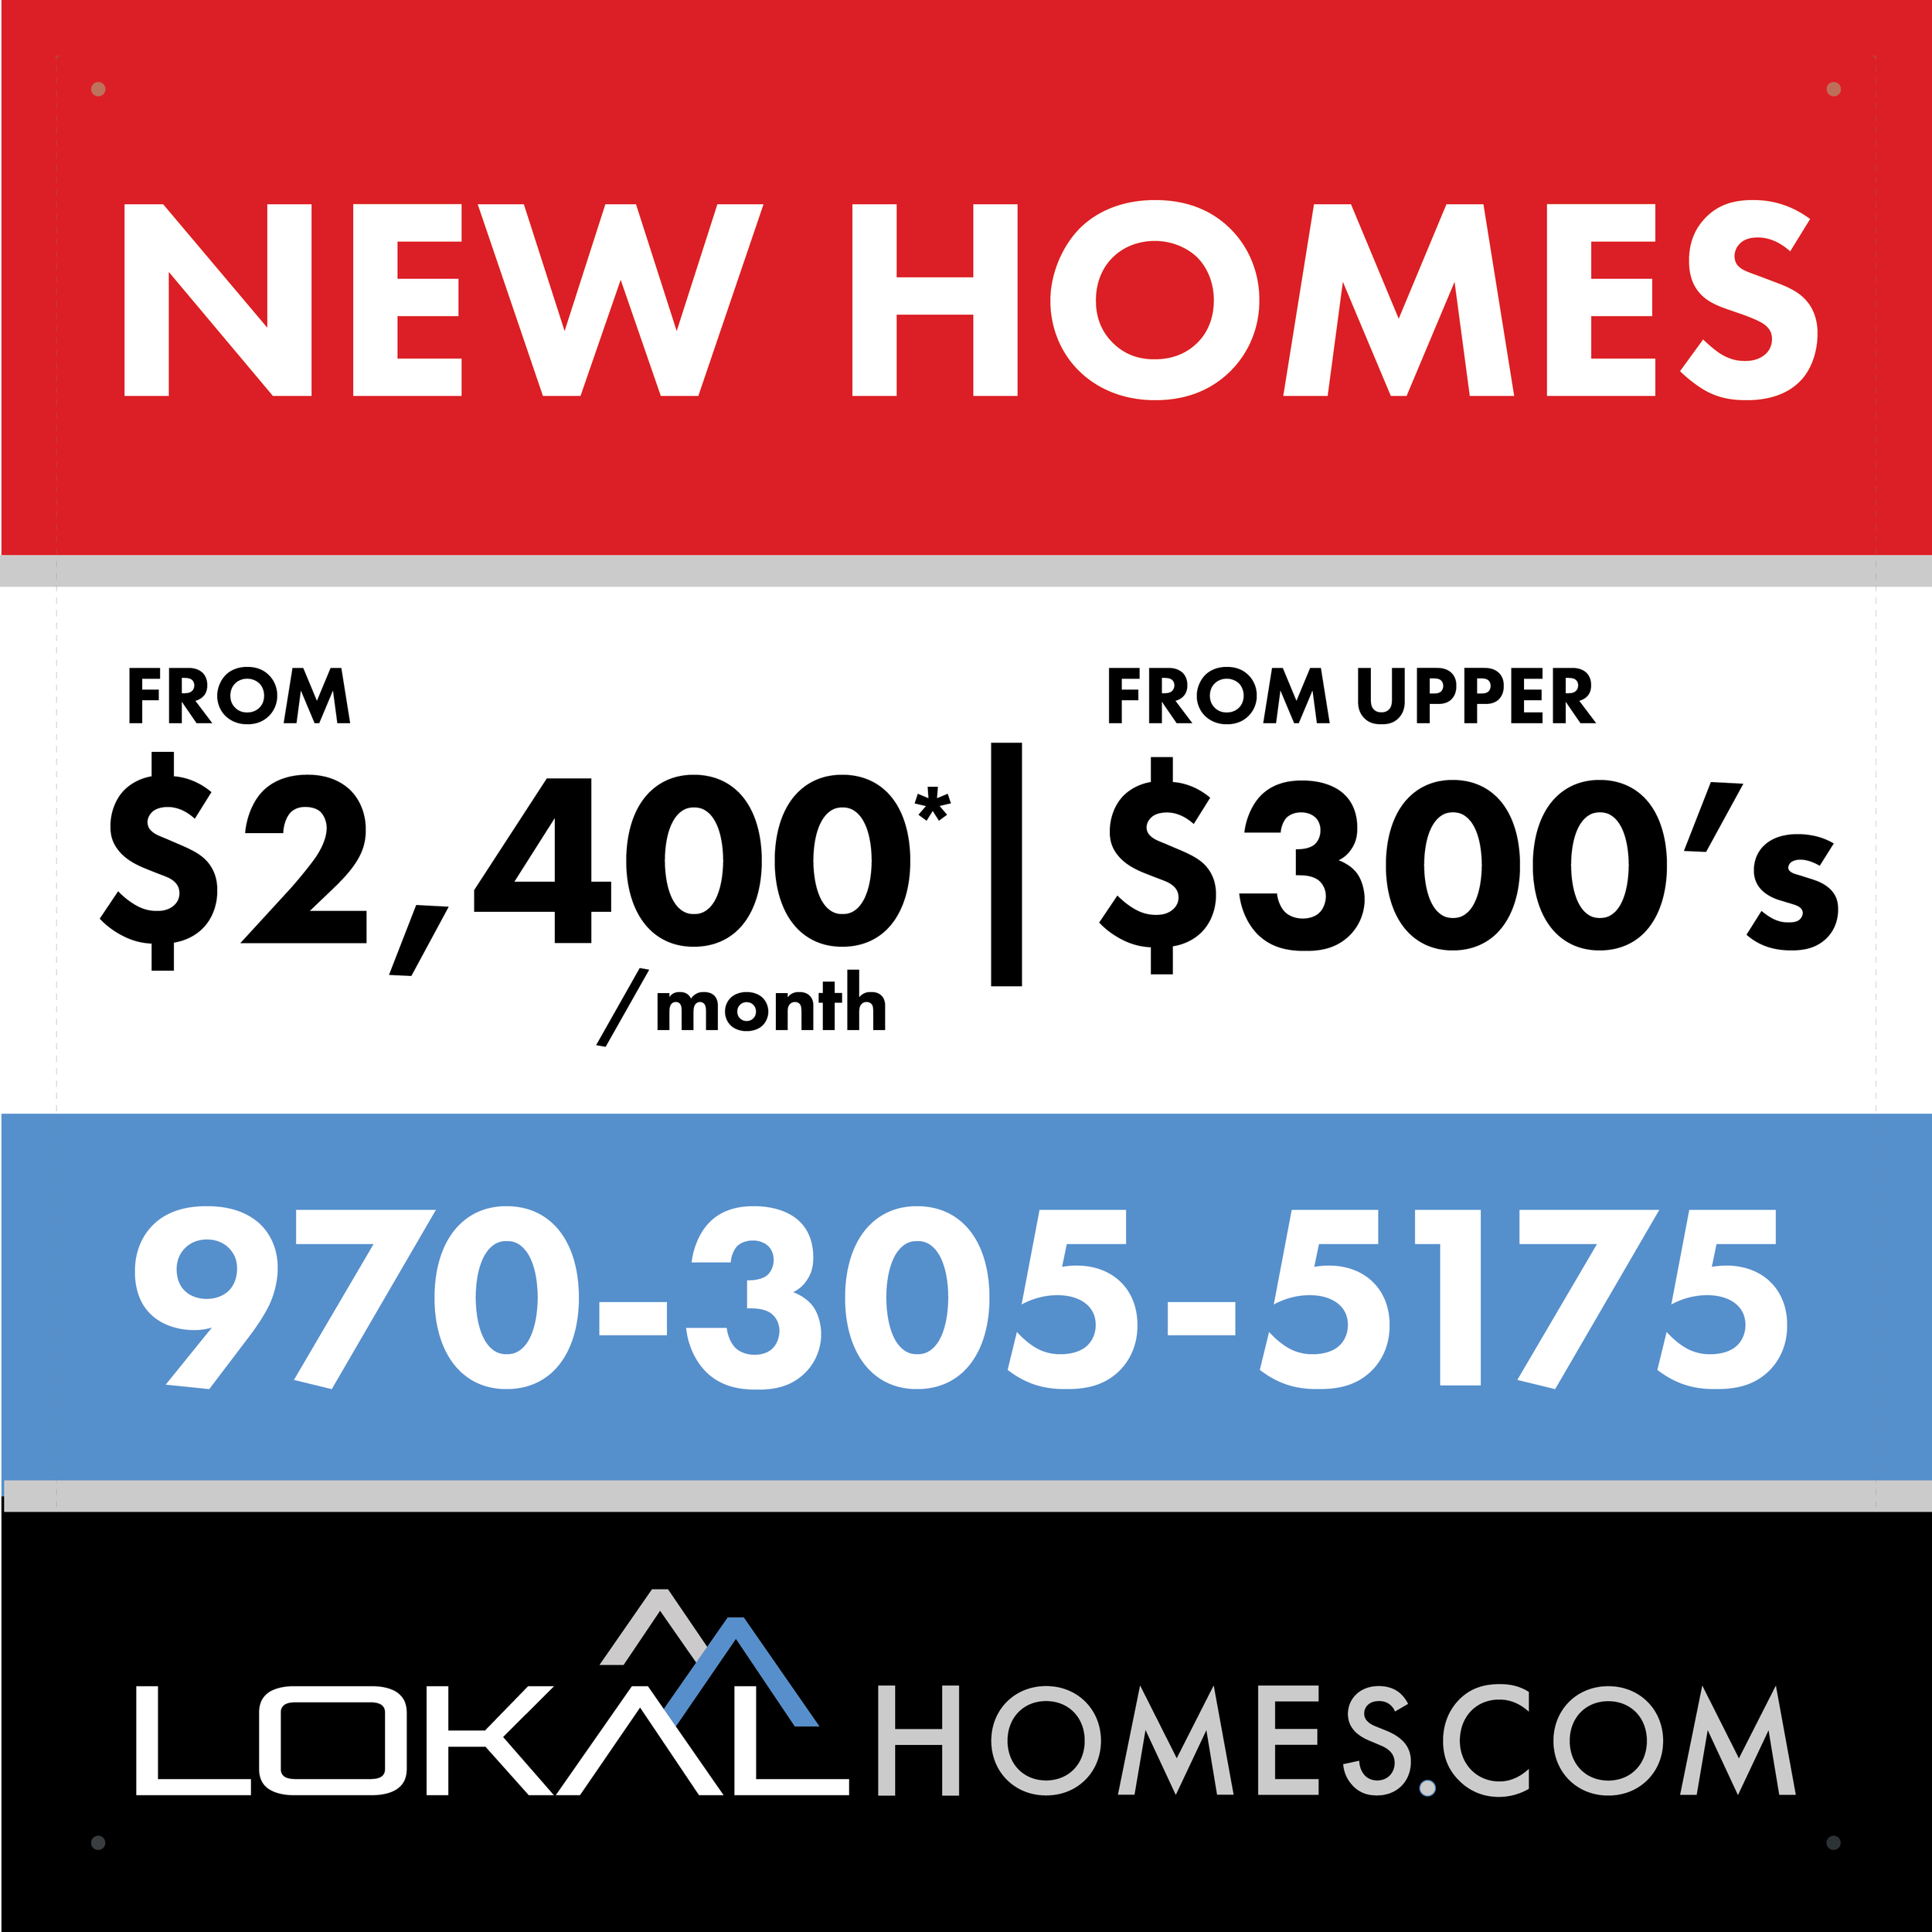 Lokal Homes - The Reserve at Registry Ridge - Ft. Collins, CO